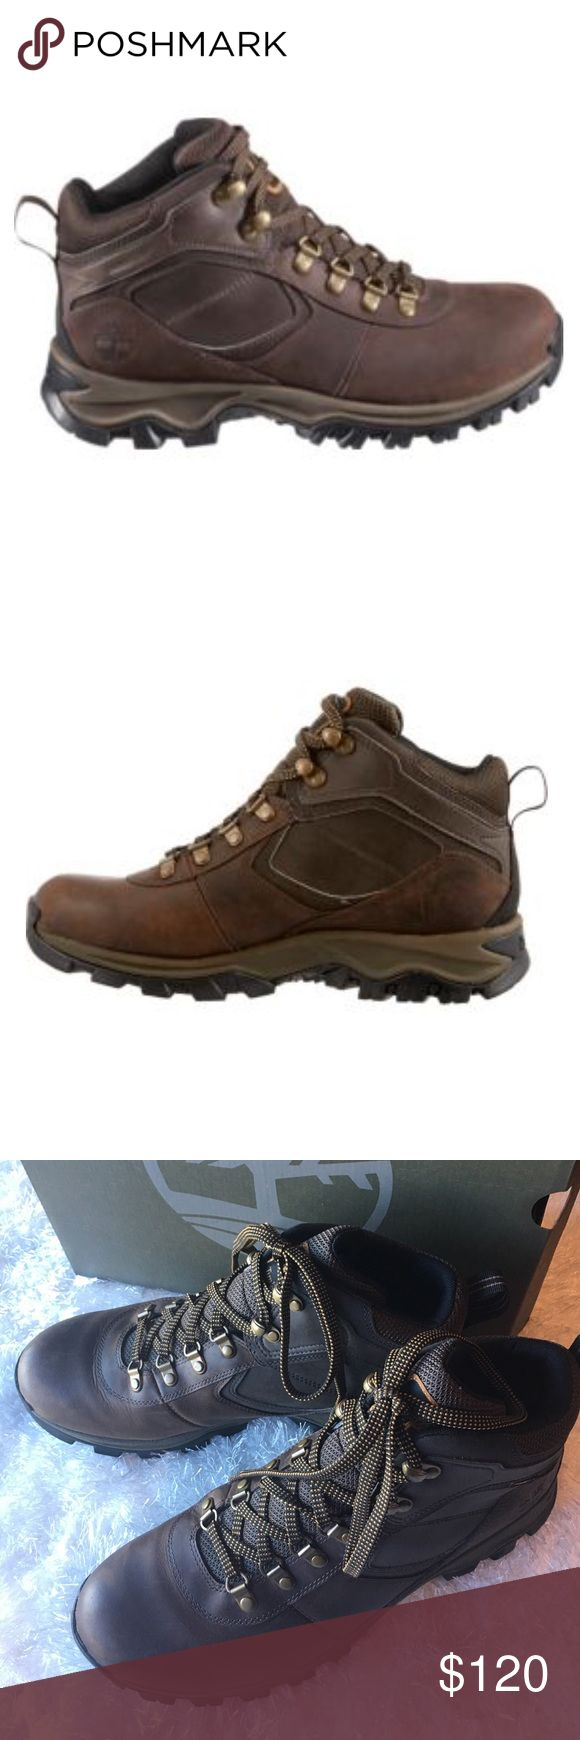 TIMBERLAND MEN'S EARTHKEEPERS BOOTS Brown 100% waterproof leather Timberland Earthkeepers Mr. Maddsen hiking boots. Worn two days, some minor scuffs, as pictured, can be buffed with leather polish. Timberland Shoes Rain & Snow Boots